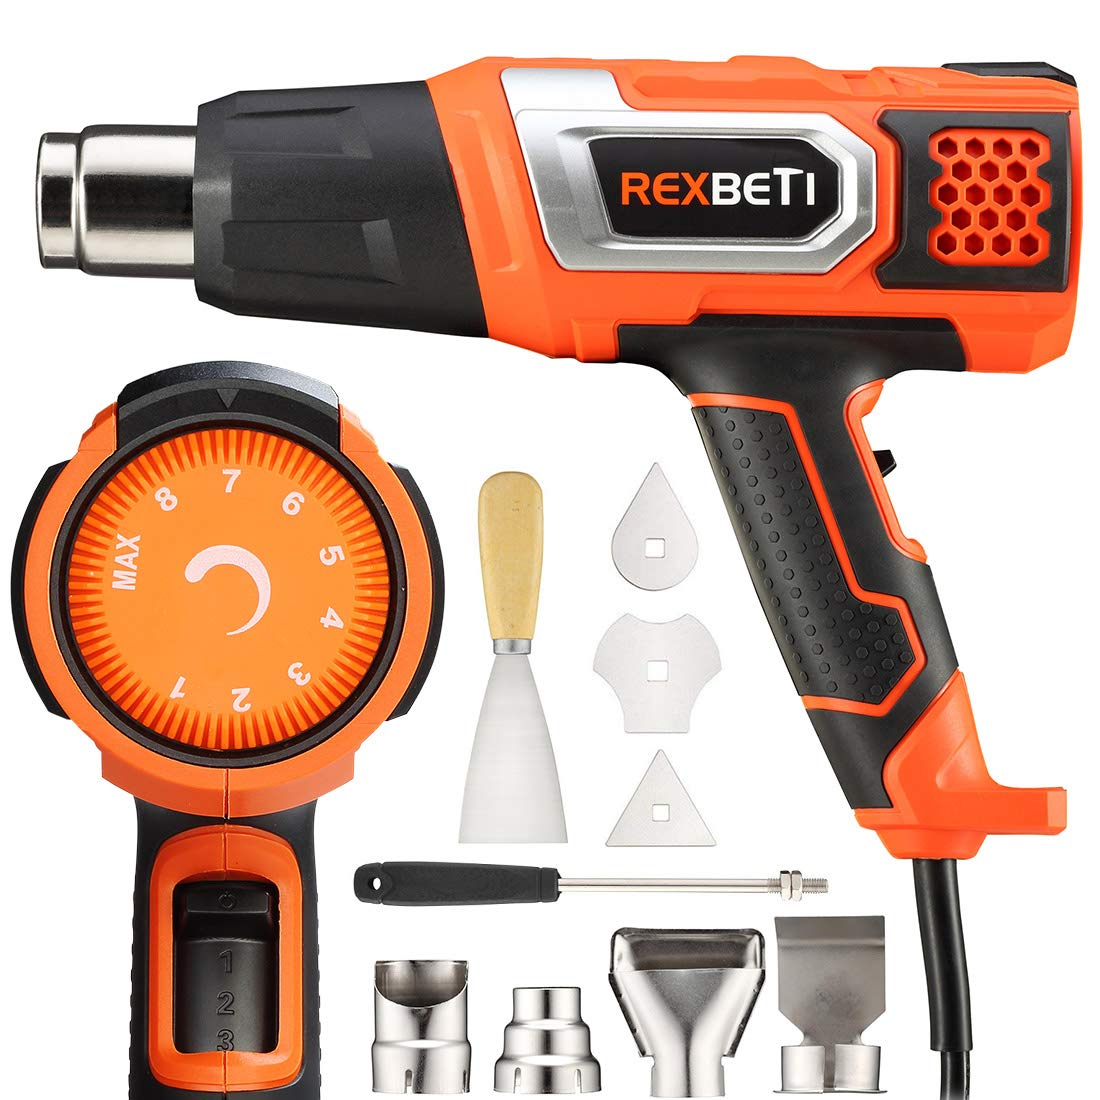 Heat Gun Variable Temperature, REXBETI Portable Hot Air Gun 1500W 140℉-932℉ with 3 Air Flow, 9 Accessories for Heat shrink tubing, Wrapping Drying Painting, Non-Slip Soft Handle, Black Orange